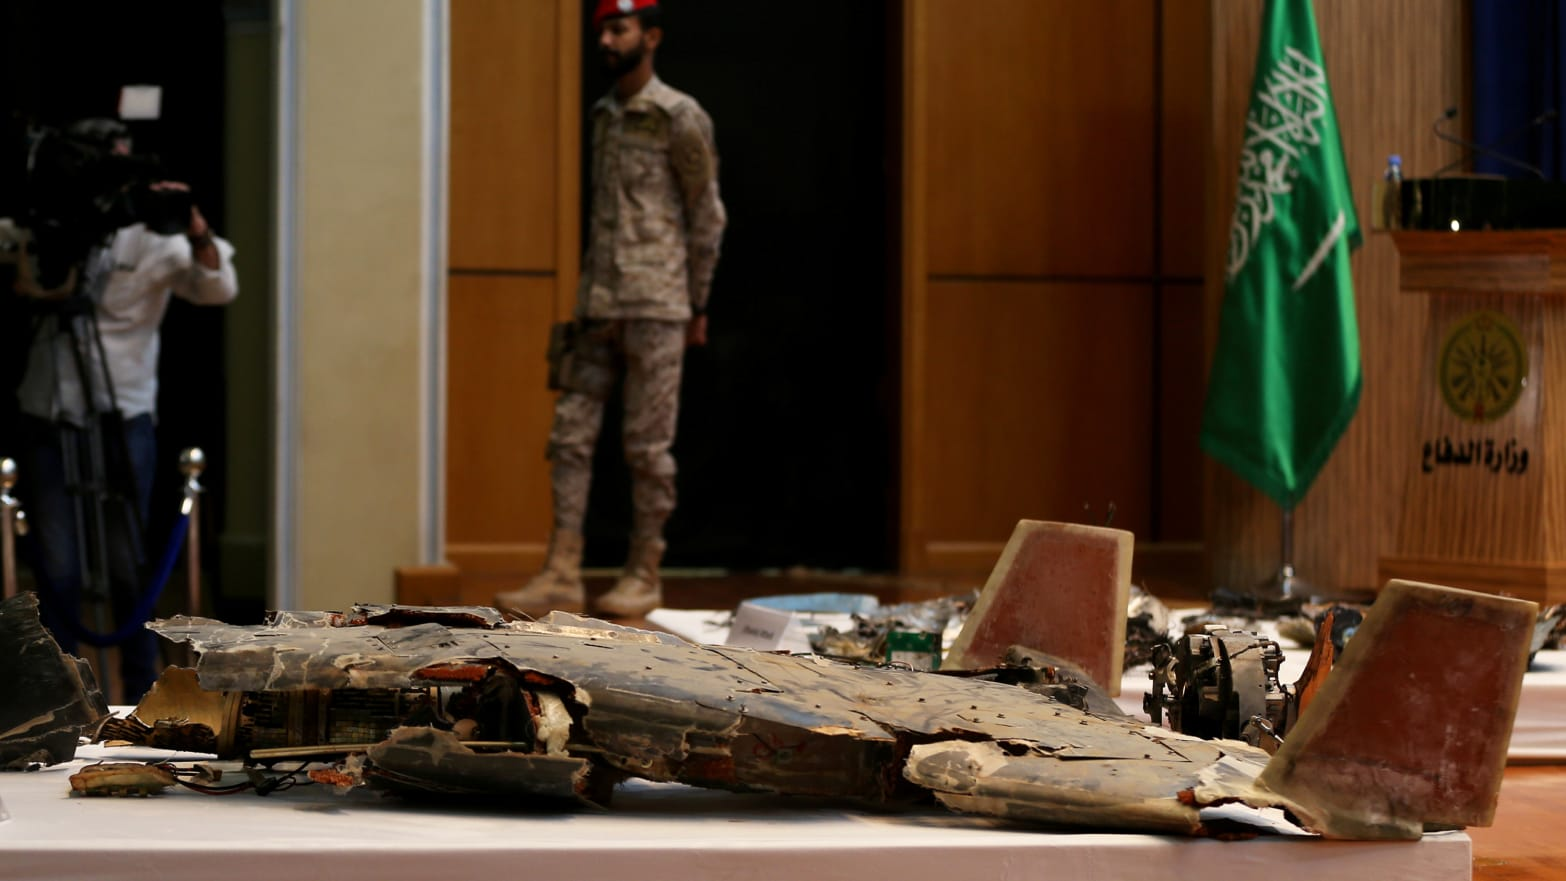 Made in Iran? The Clues Hidden in the Drones That Attacked Saudi Arabia